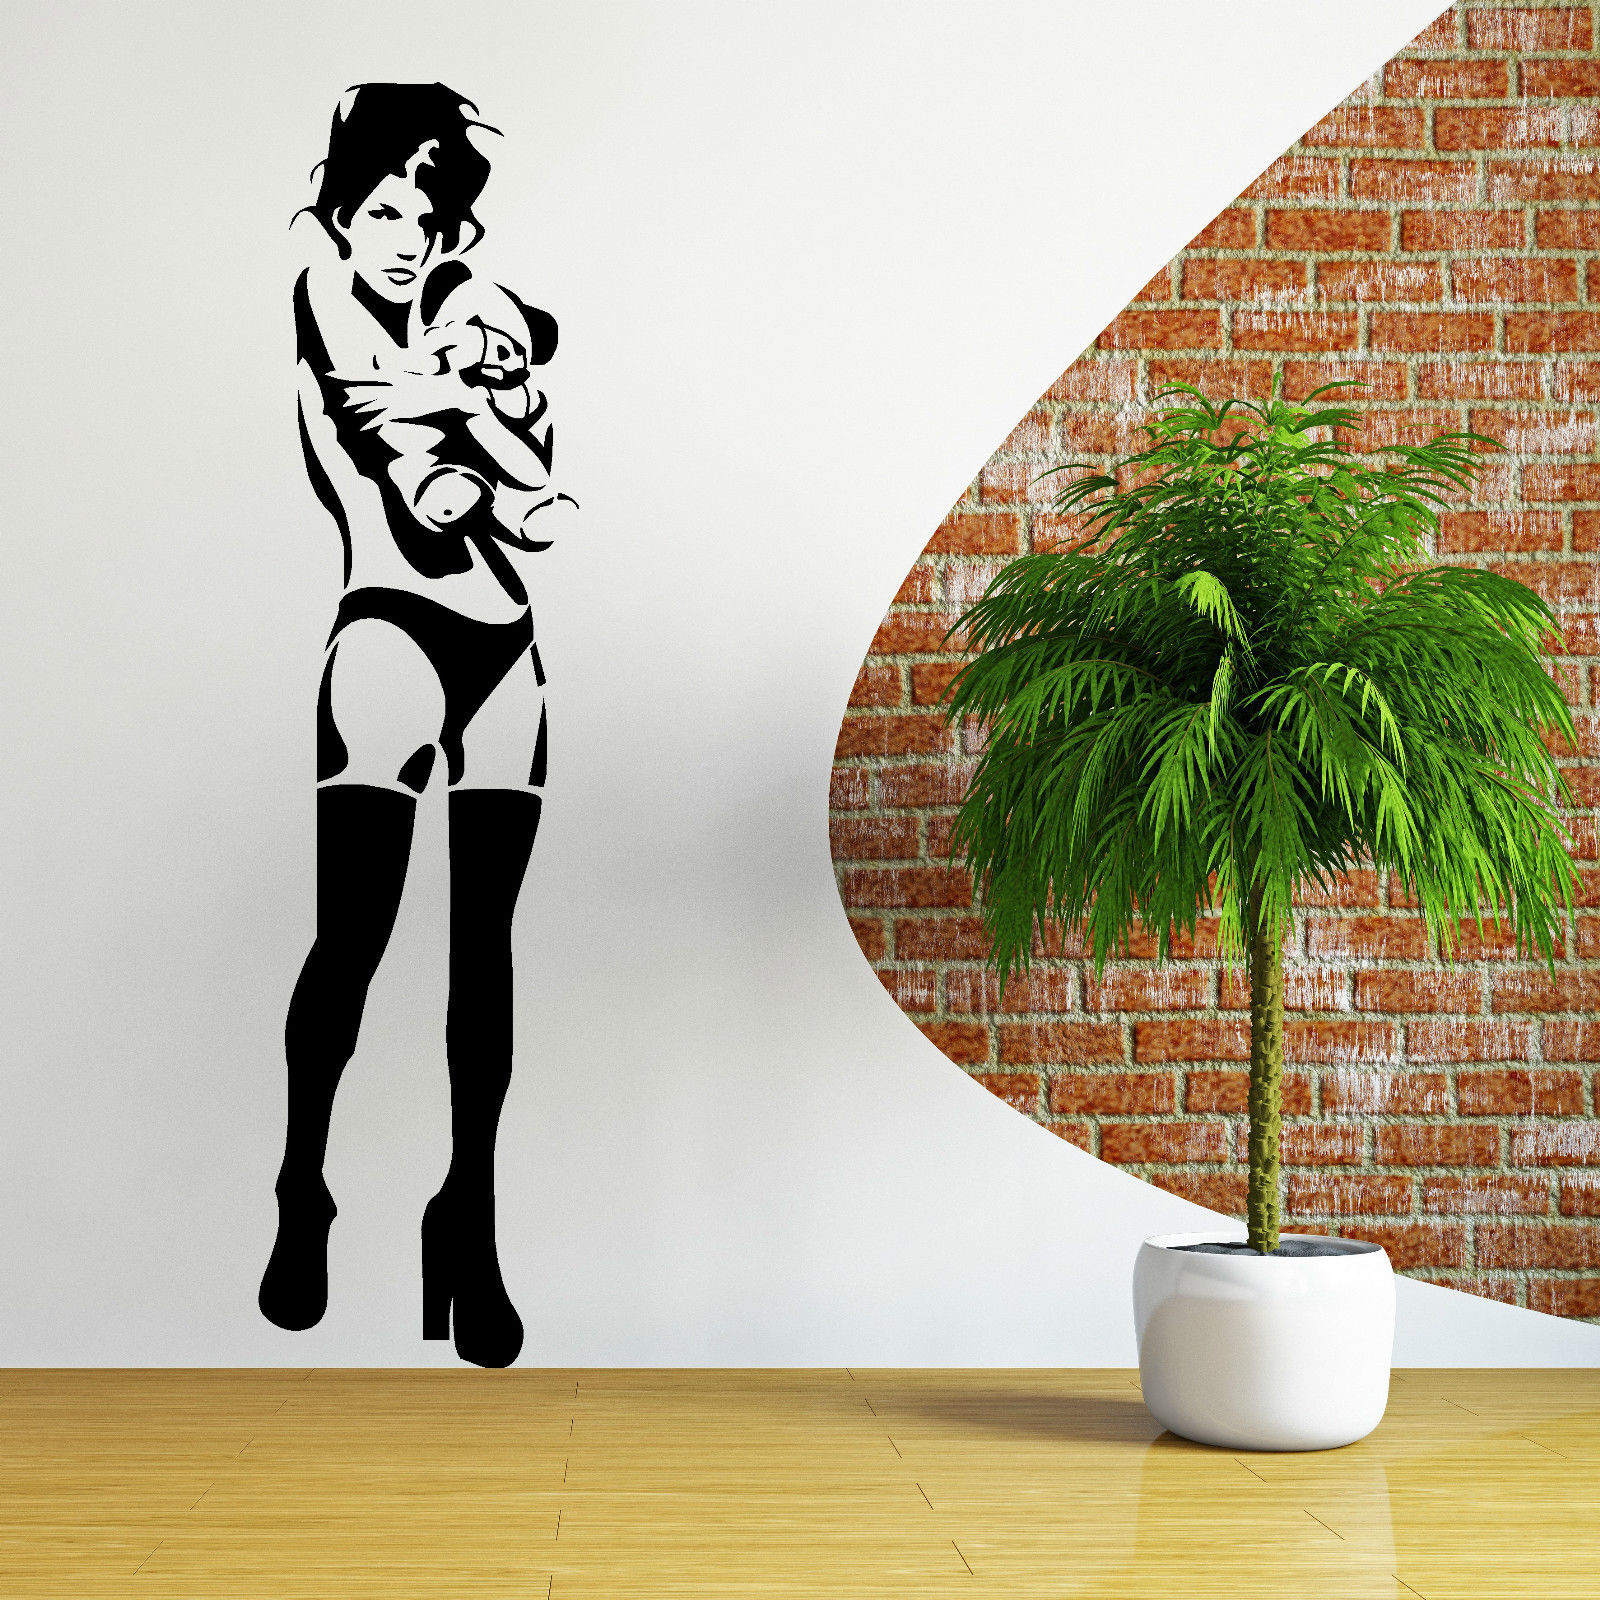 Removable Wall Art aliexpress : buy c182 banksy kate moss bear vinyl wall art